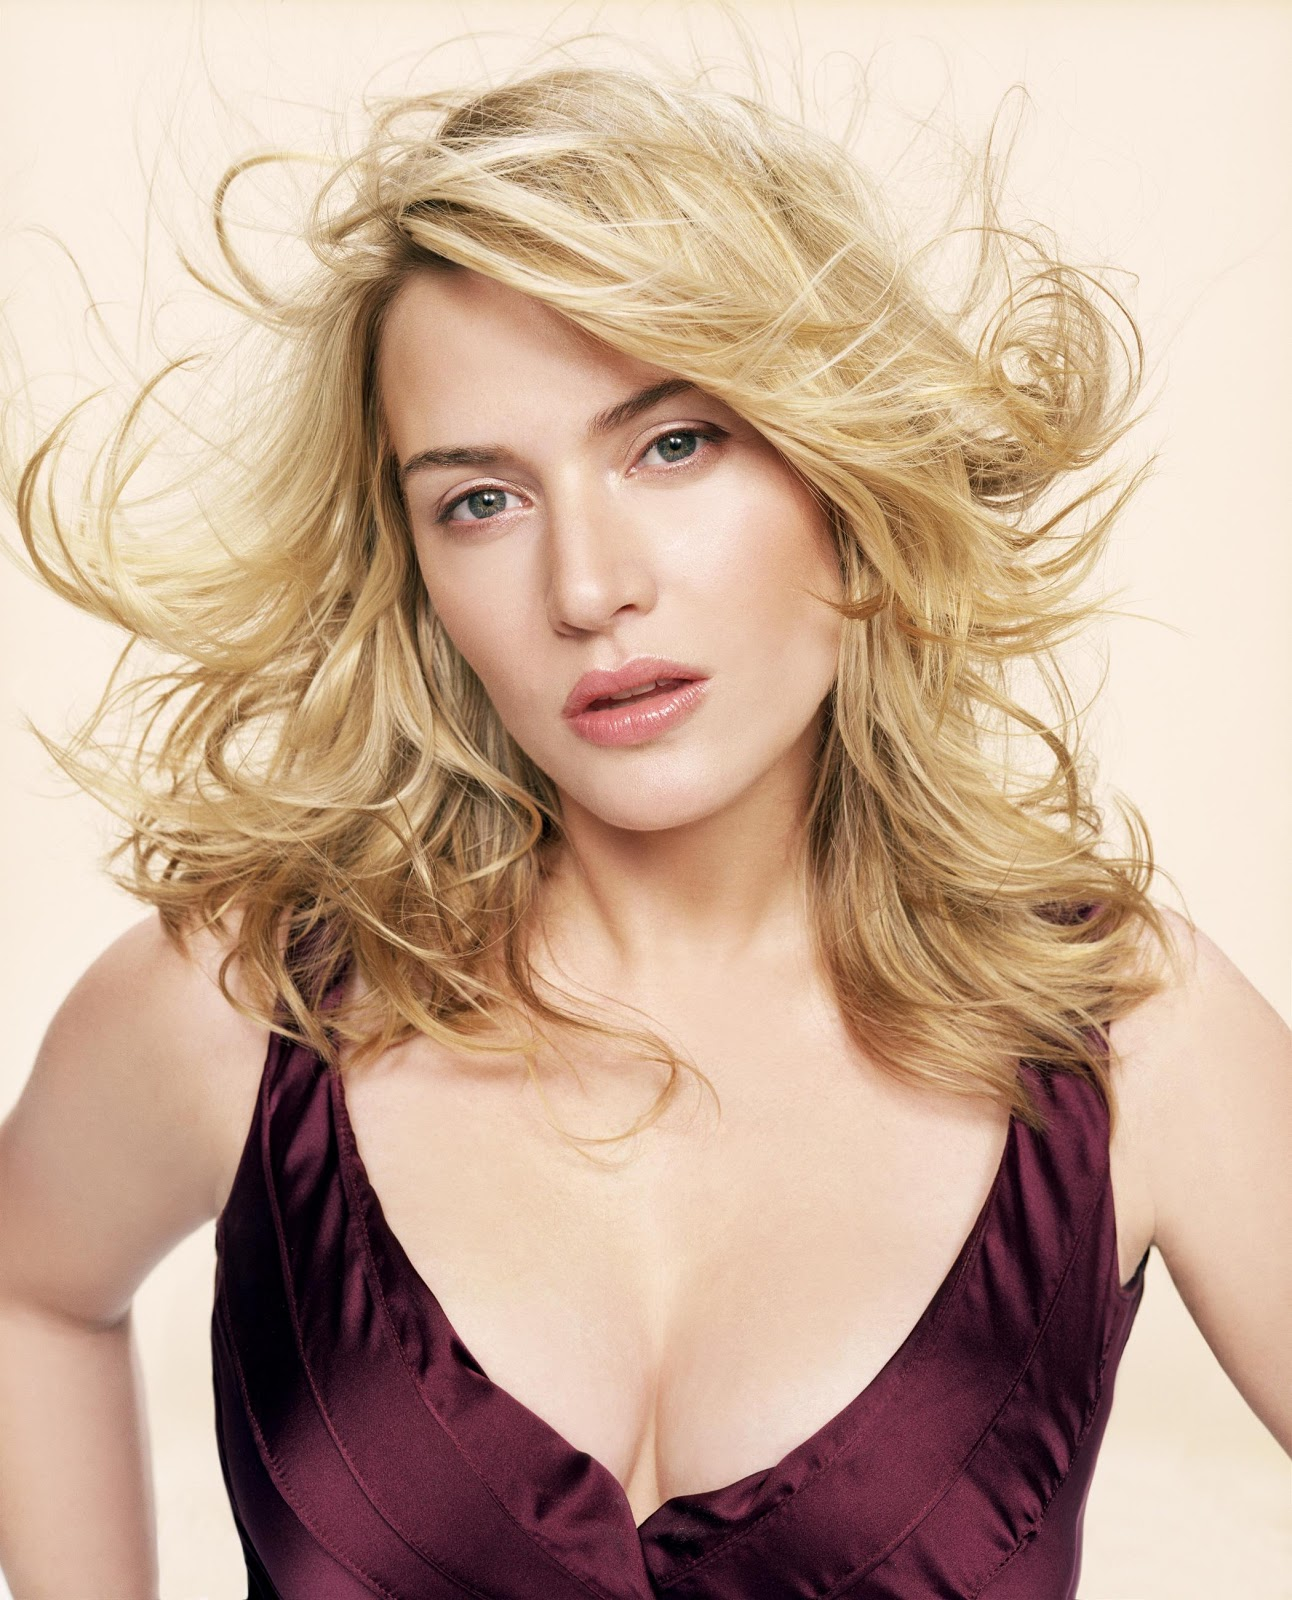 http://2.bp.blogspot.com/-QO4TFqXpRE0/TpmU0YbbfHI/AAAAAAAACmA/48lpUq1J-wg/s1600/kate_winslet_high_resolution-other.jpg